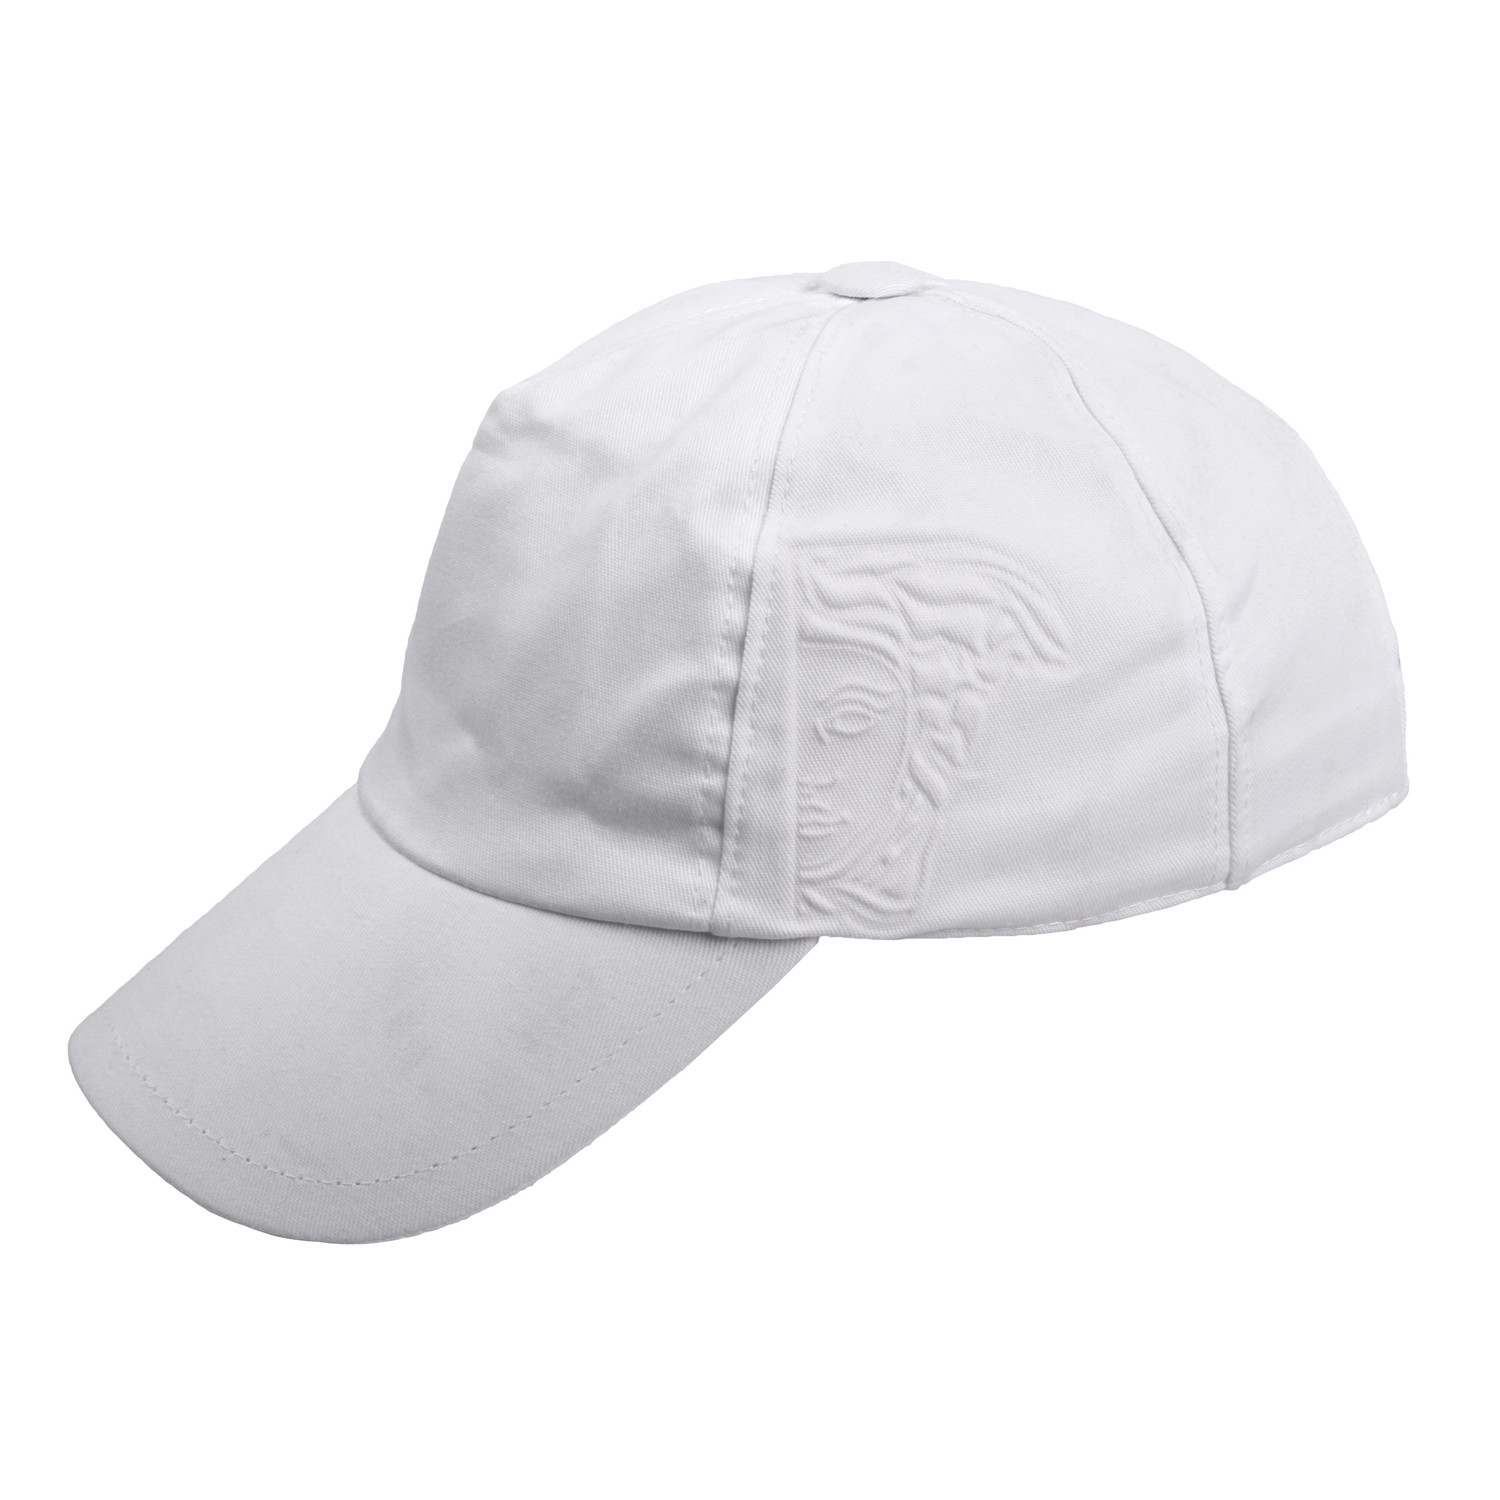 a6692516 Medusa Baseball Cap // White - Versace Collection - Touch of Modern